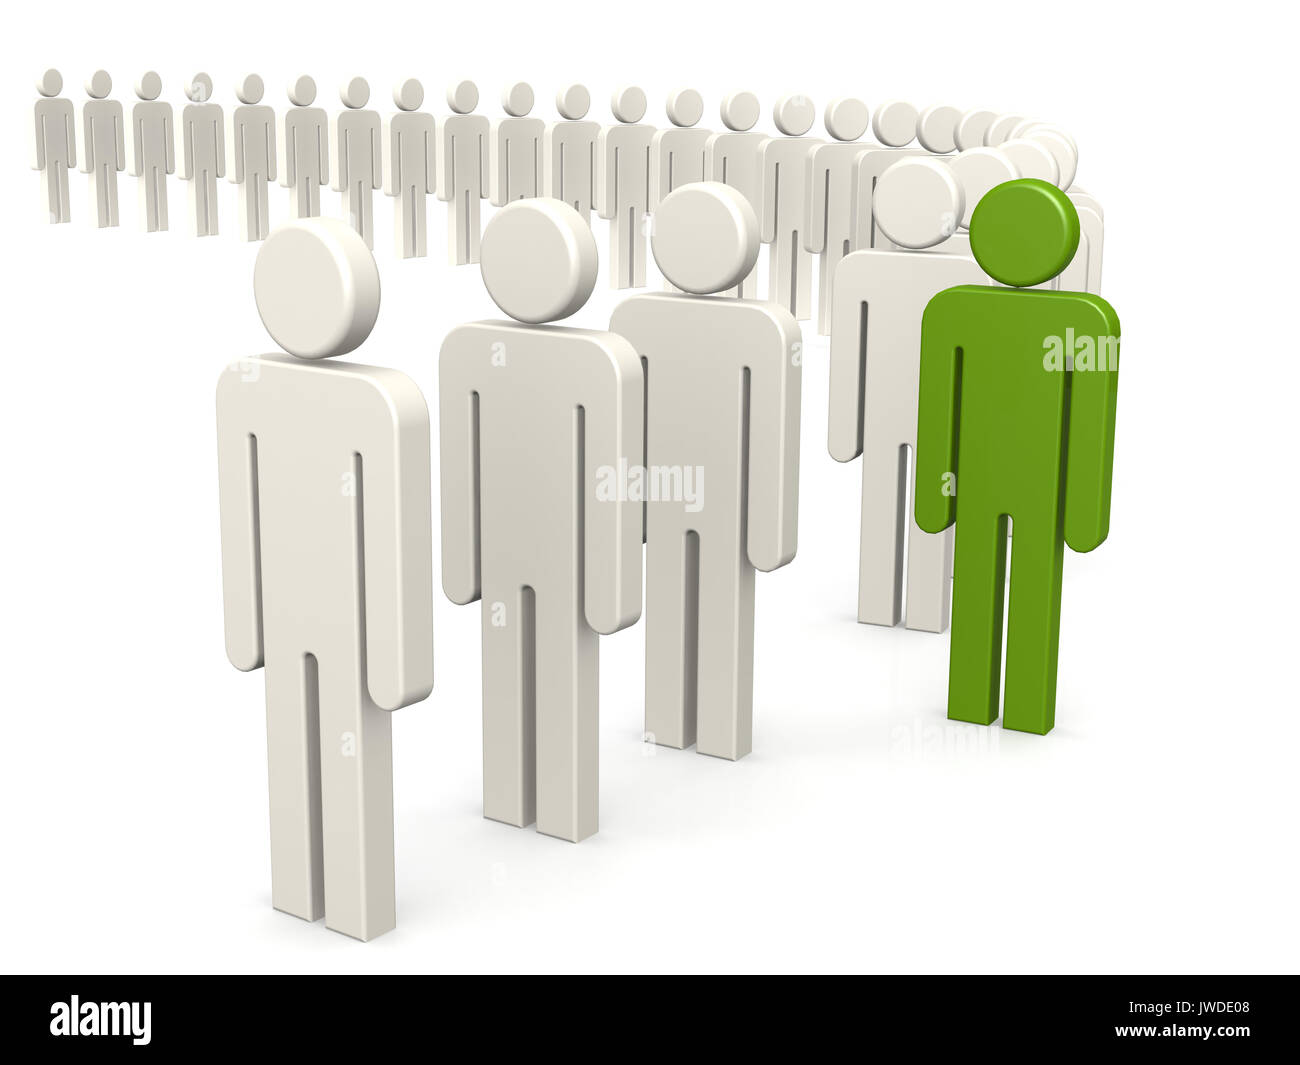 Outstanding person in green from queue 3d rendering stock photo outstanding person in green from queue 3d rendering ccuart Images